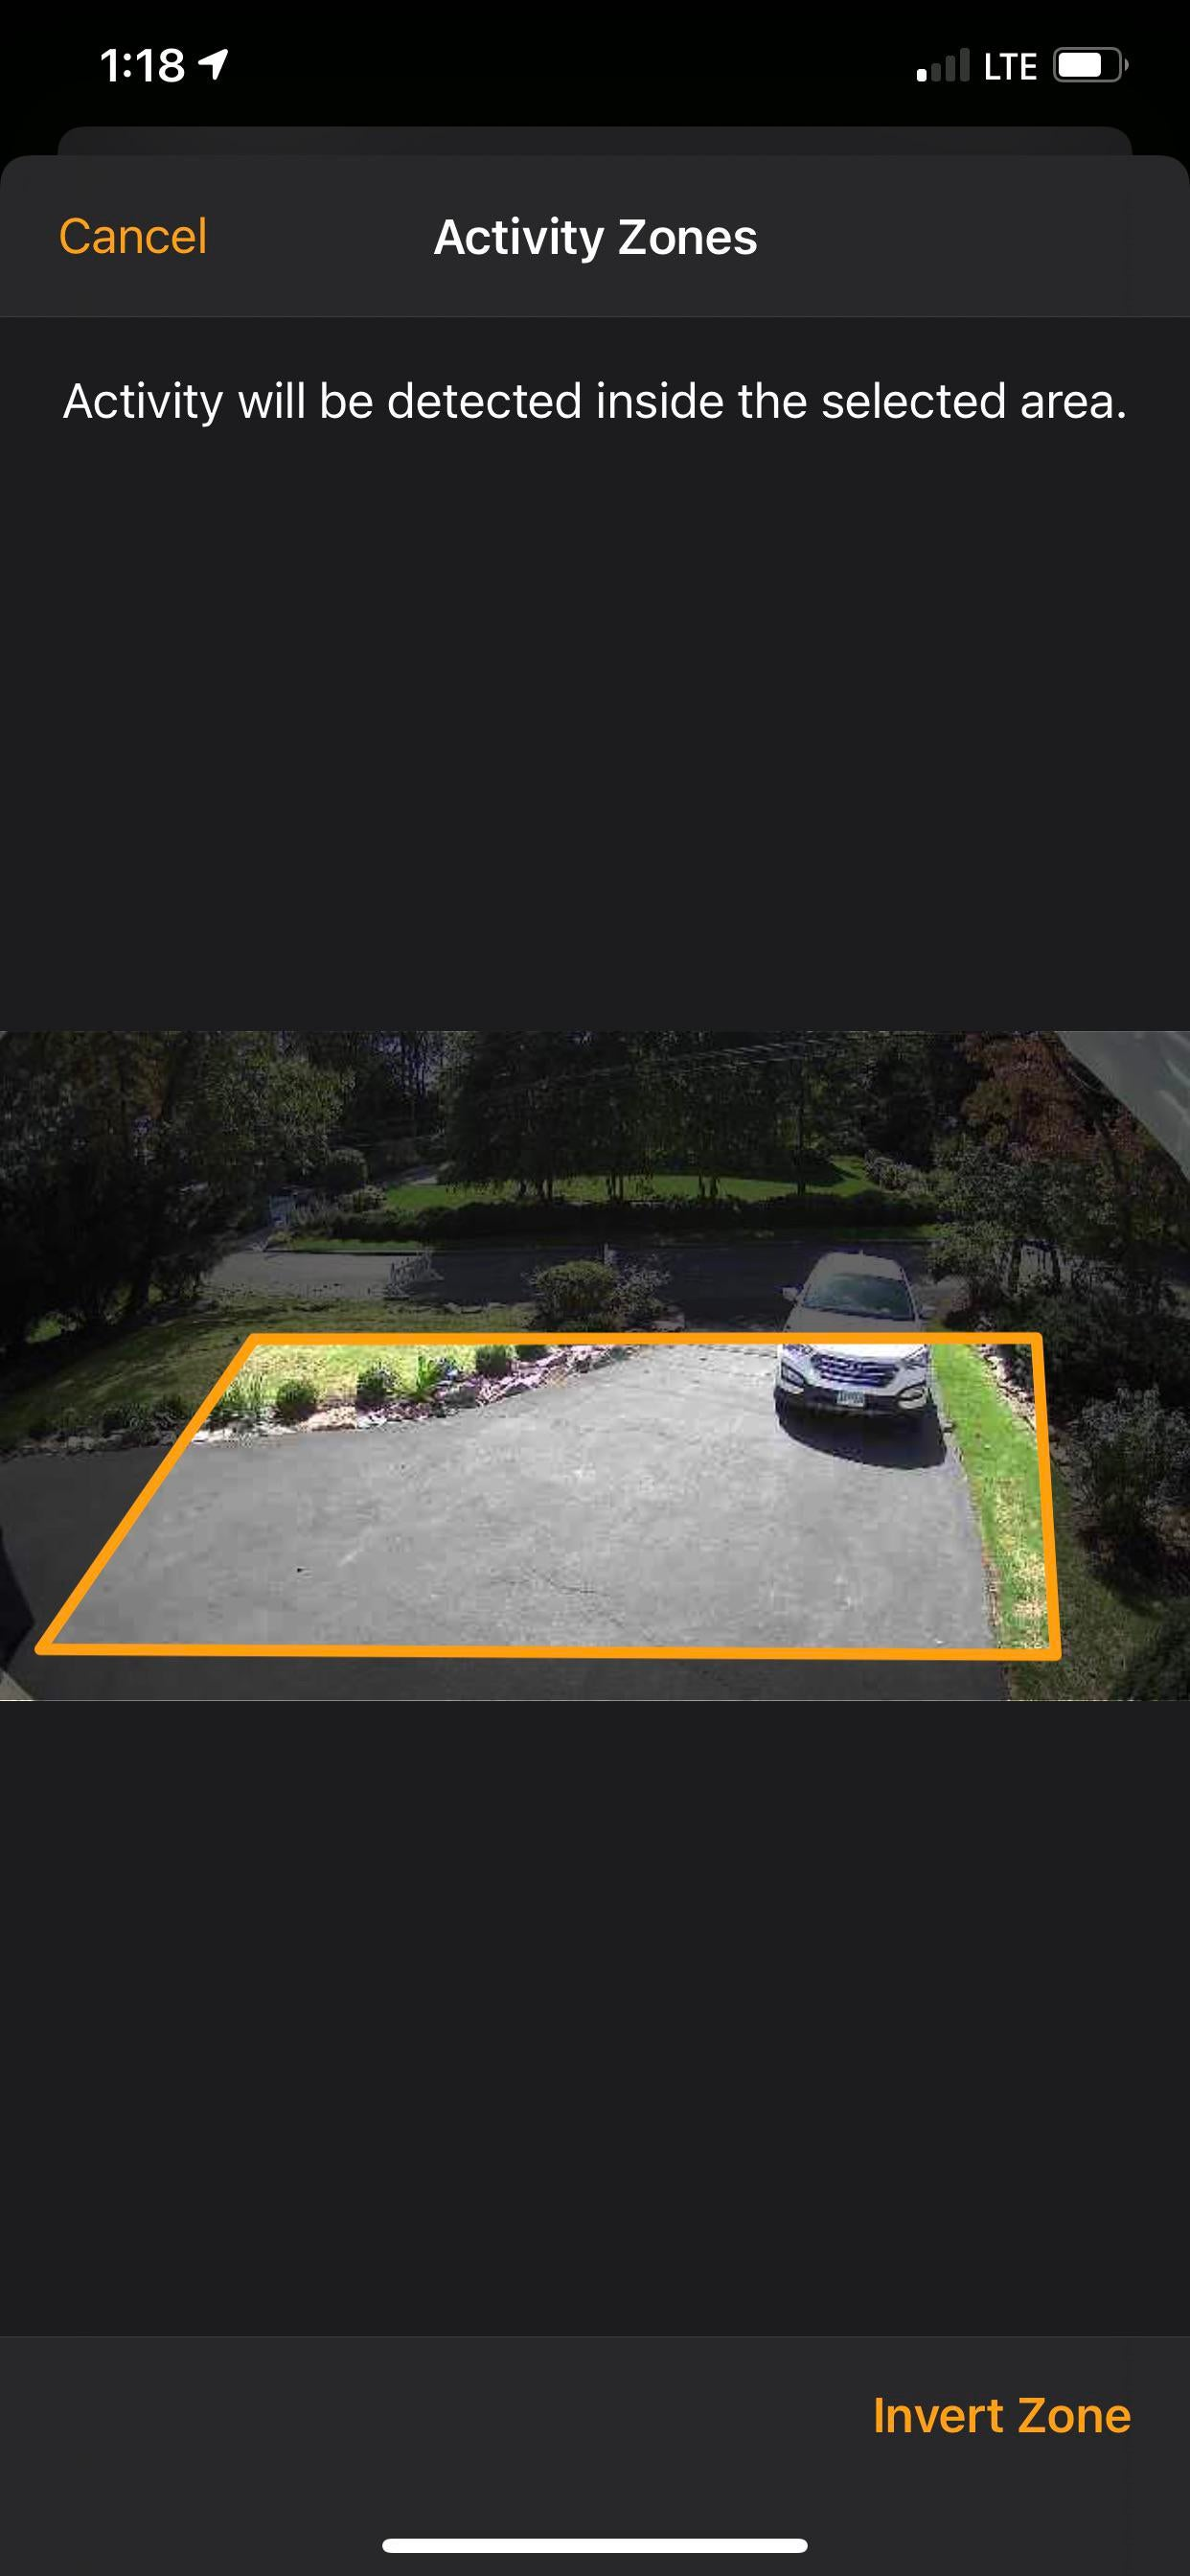 Eufycam 2C continues to detect machines even outside the homekit